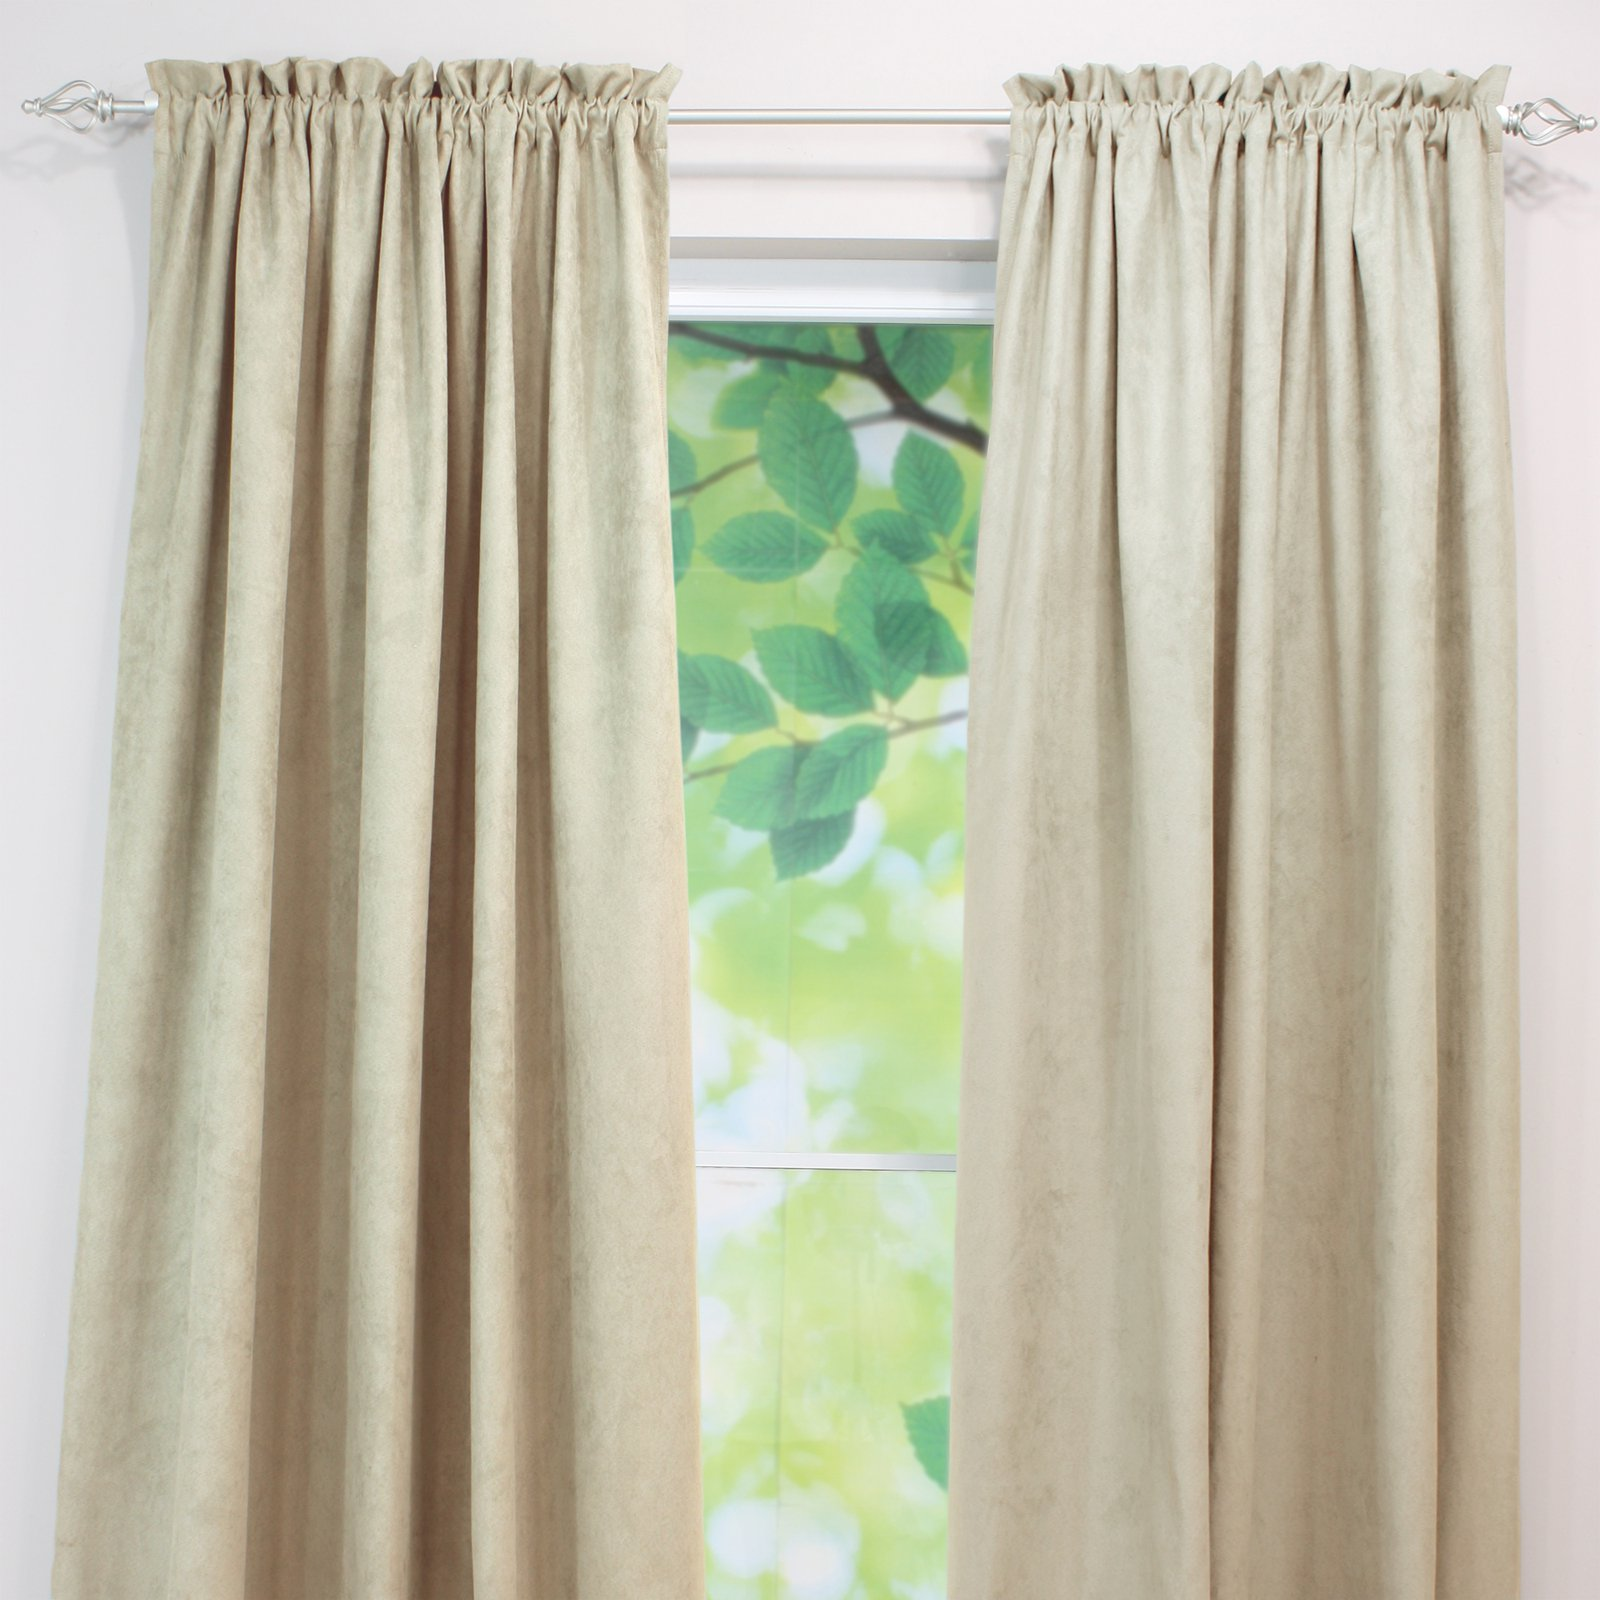 Brite Ideas Living Passion Suede Rod Pocket Curtain Panel